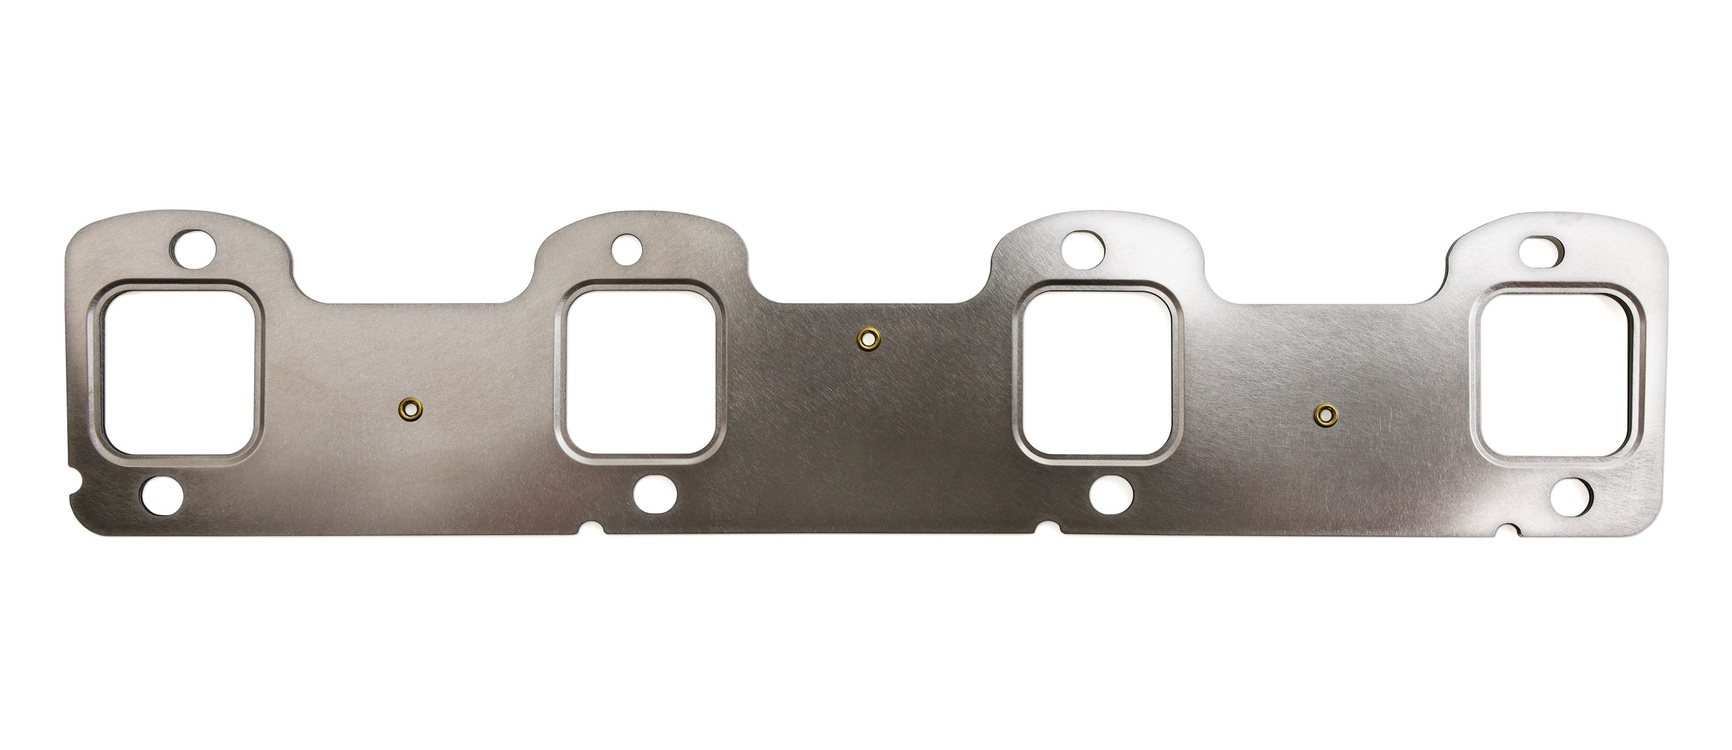 New Product Release!  Ford 6.7L Power Stroke Diesel MLS Exhaust Manifold Gasket, 2011-2014